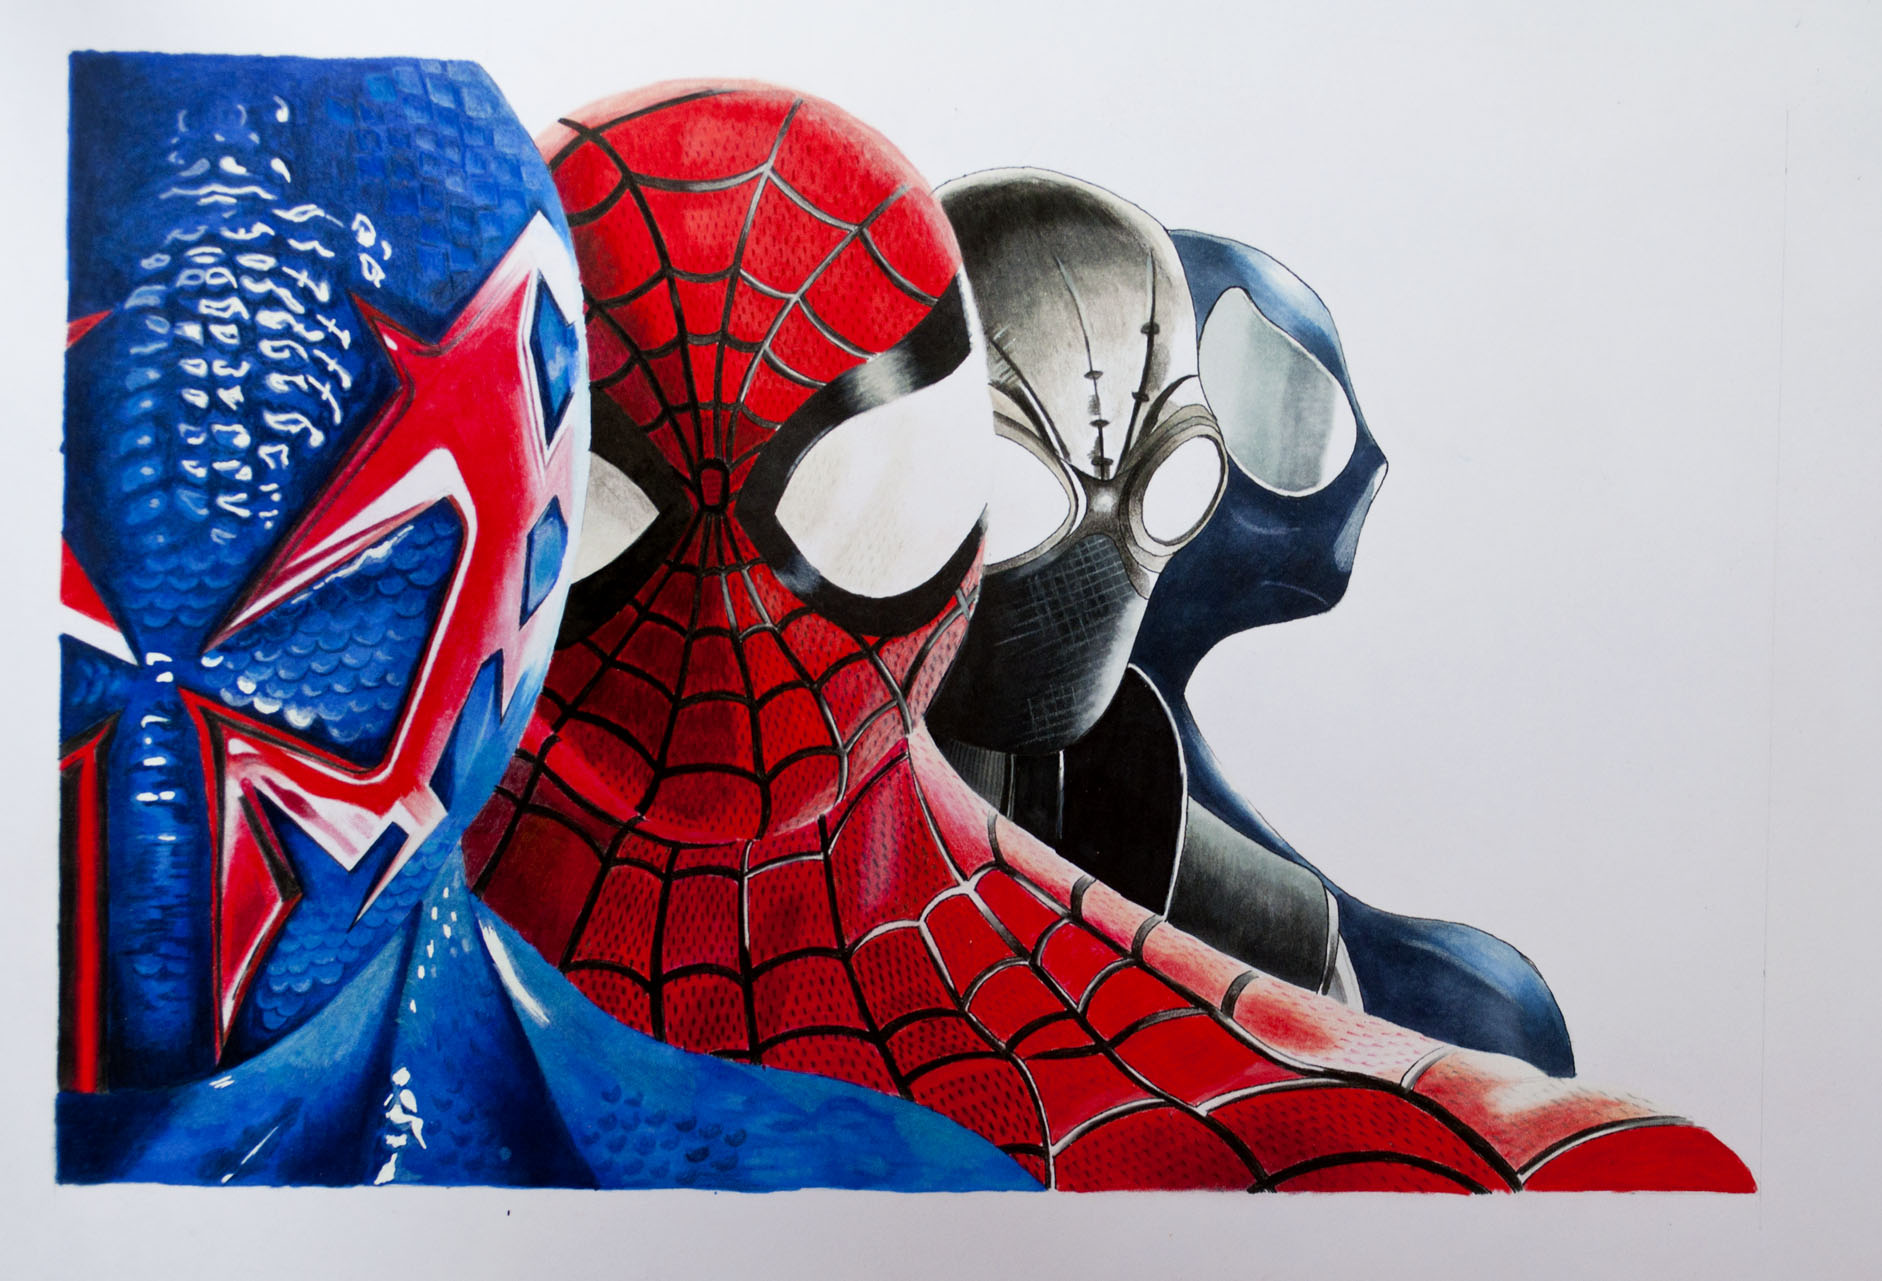 Spiderman Image 6.jpg